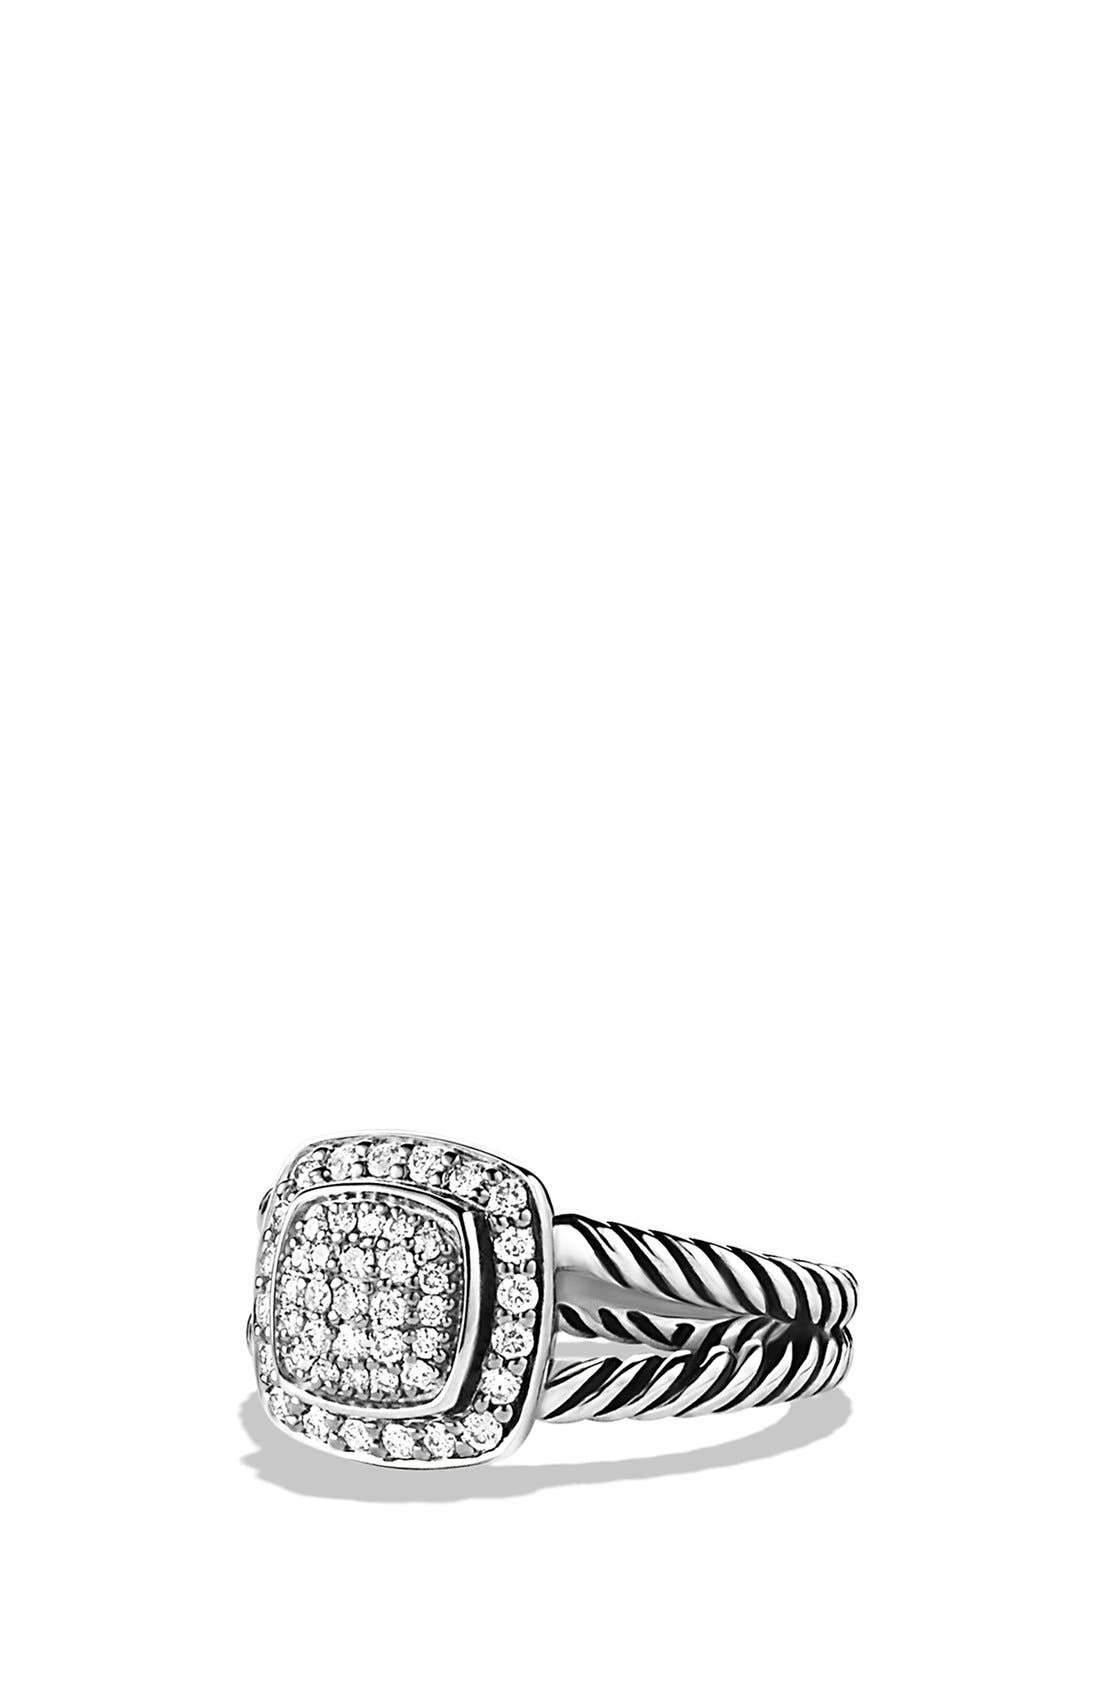 David Yurman 'Albion' Petite Ring with Diamonds